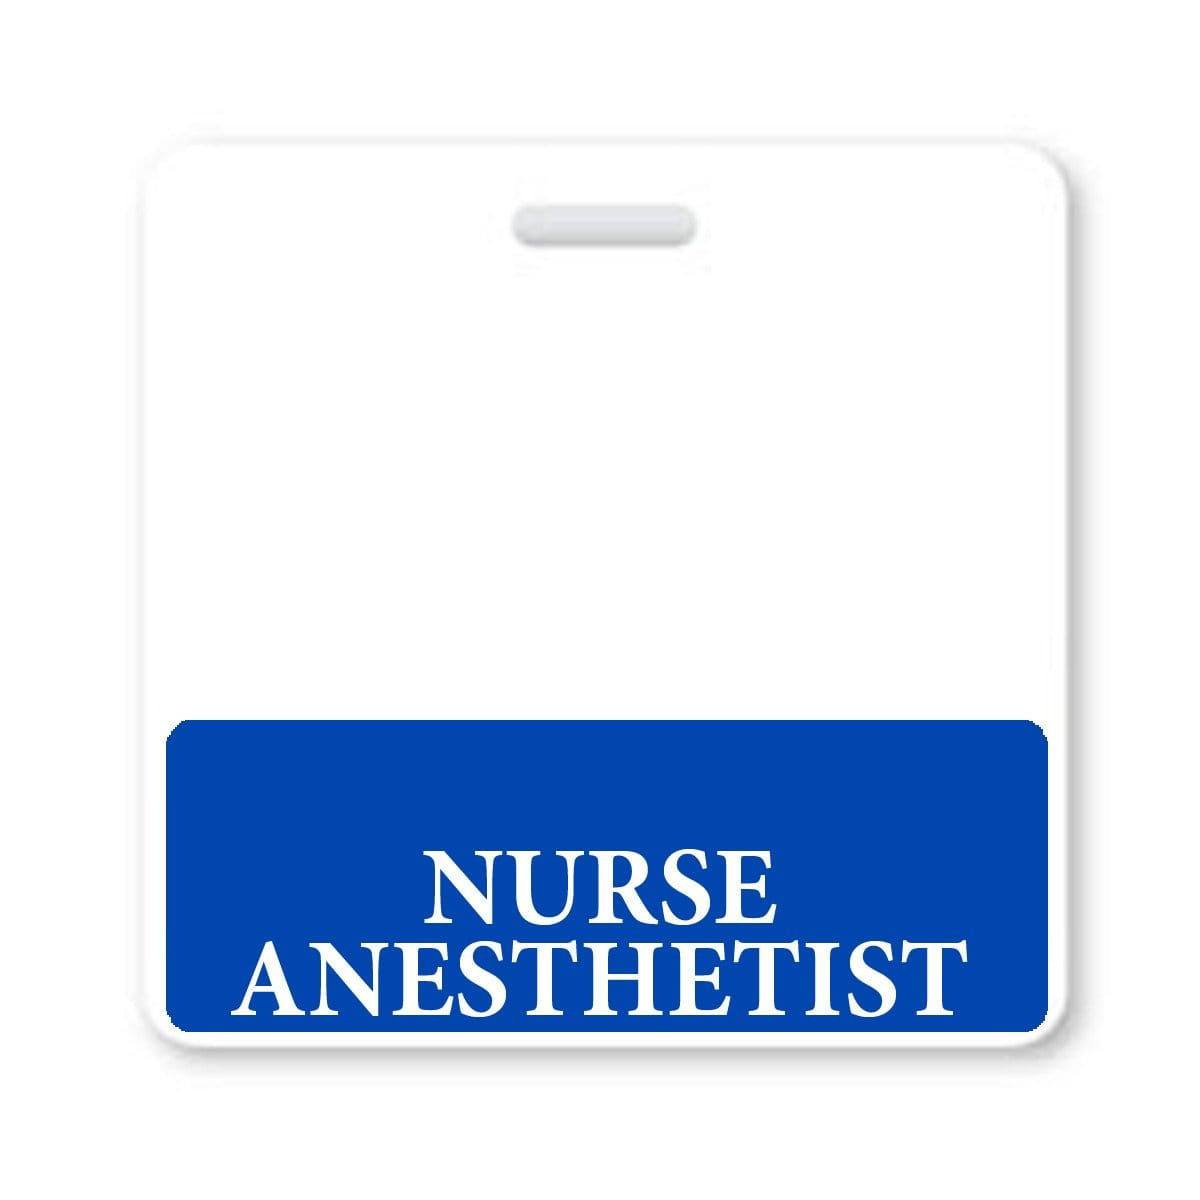 Nurse Anesthetist Horizontal Badge Buddy with Blue Border